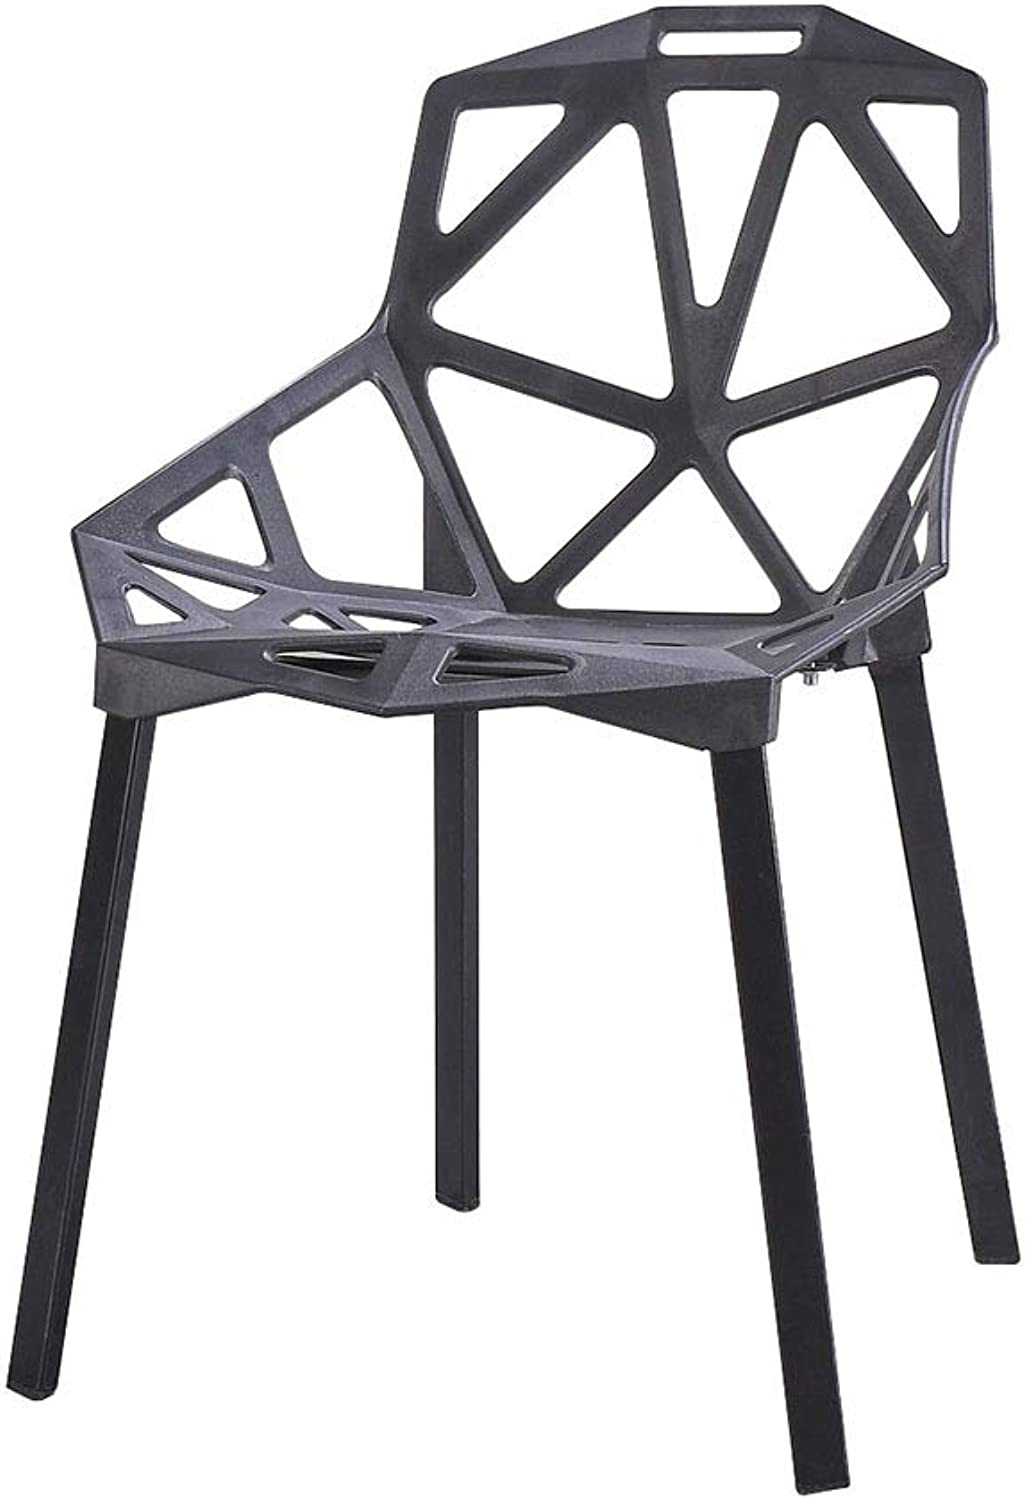 LYXPUZI Chair Lazy Nordic Chair Geometry Hollow Plastic Back Personality Art Fashion (color   Black)